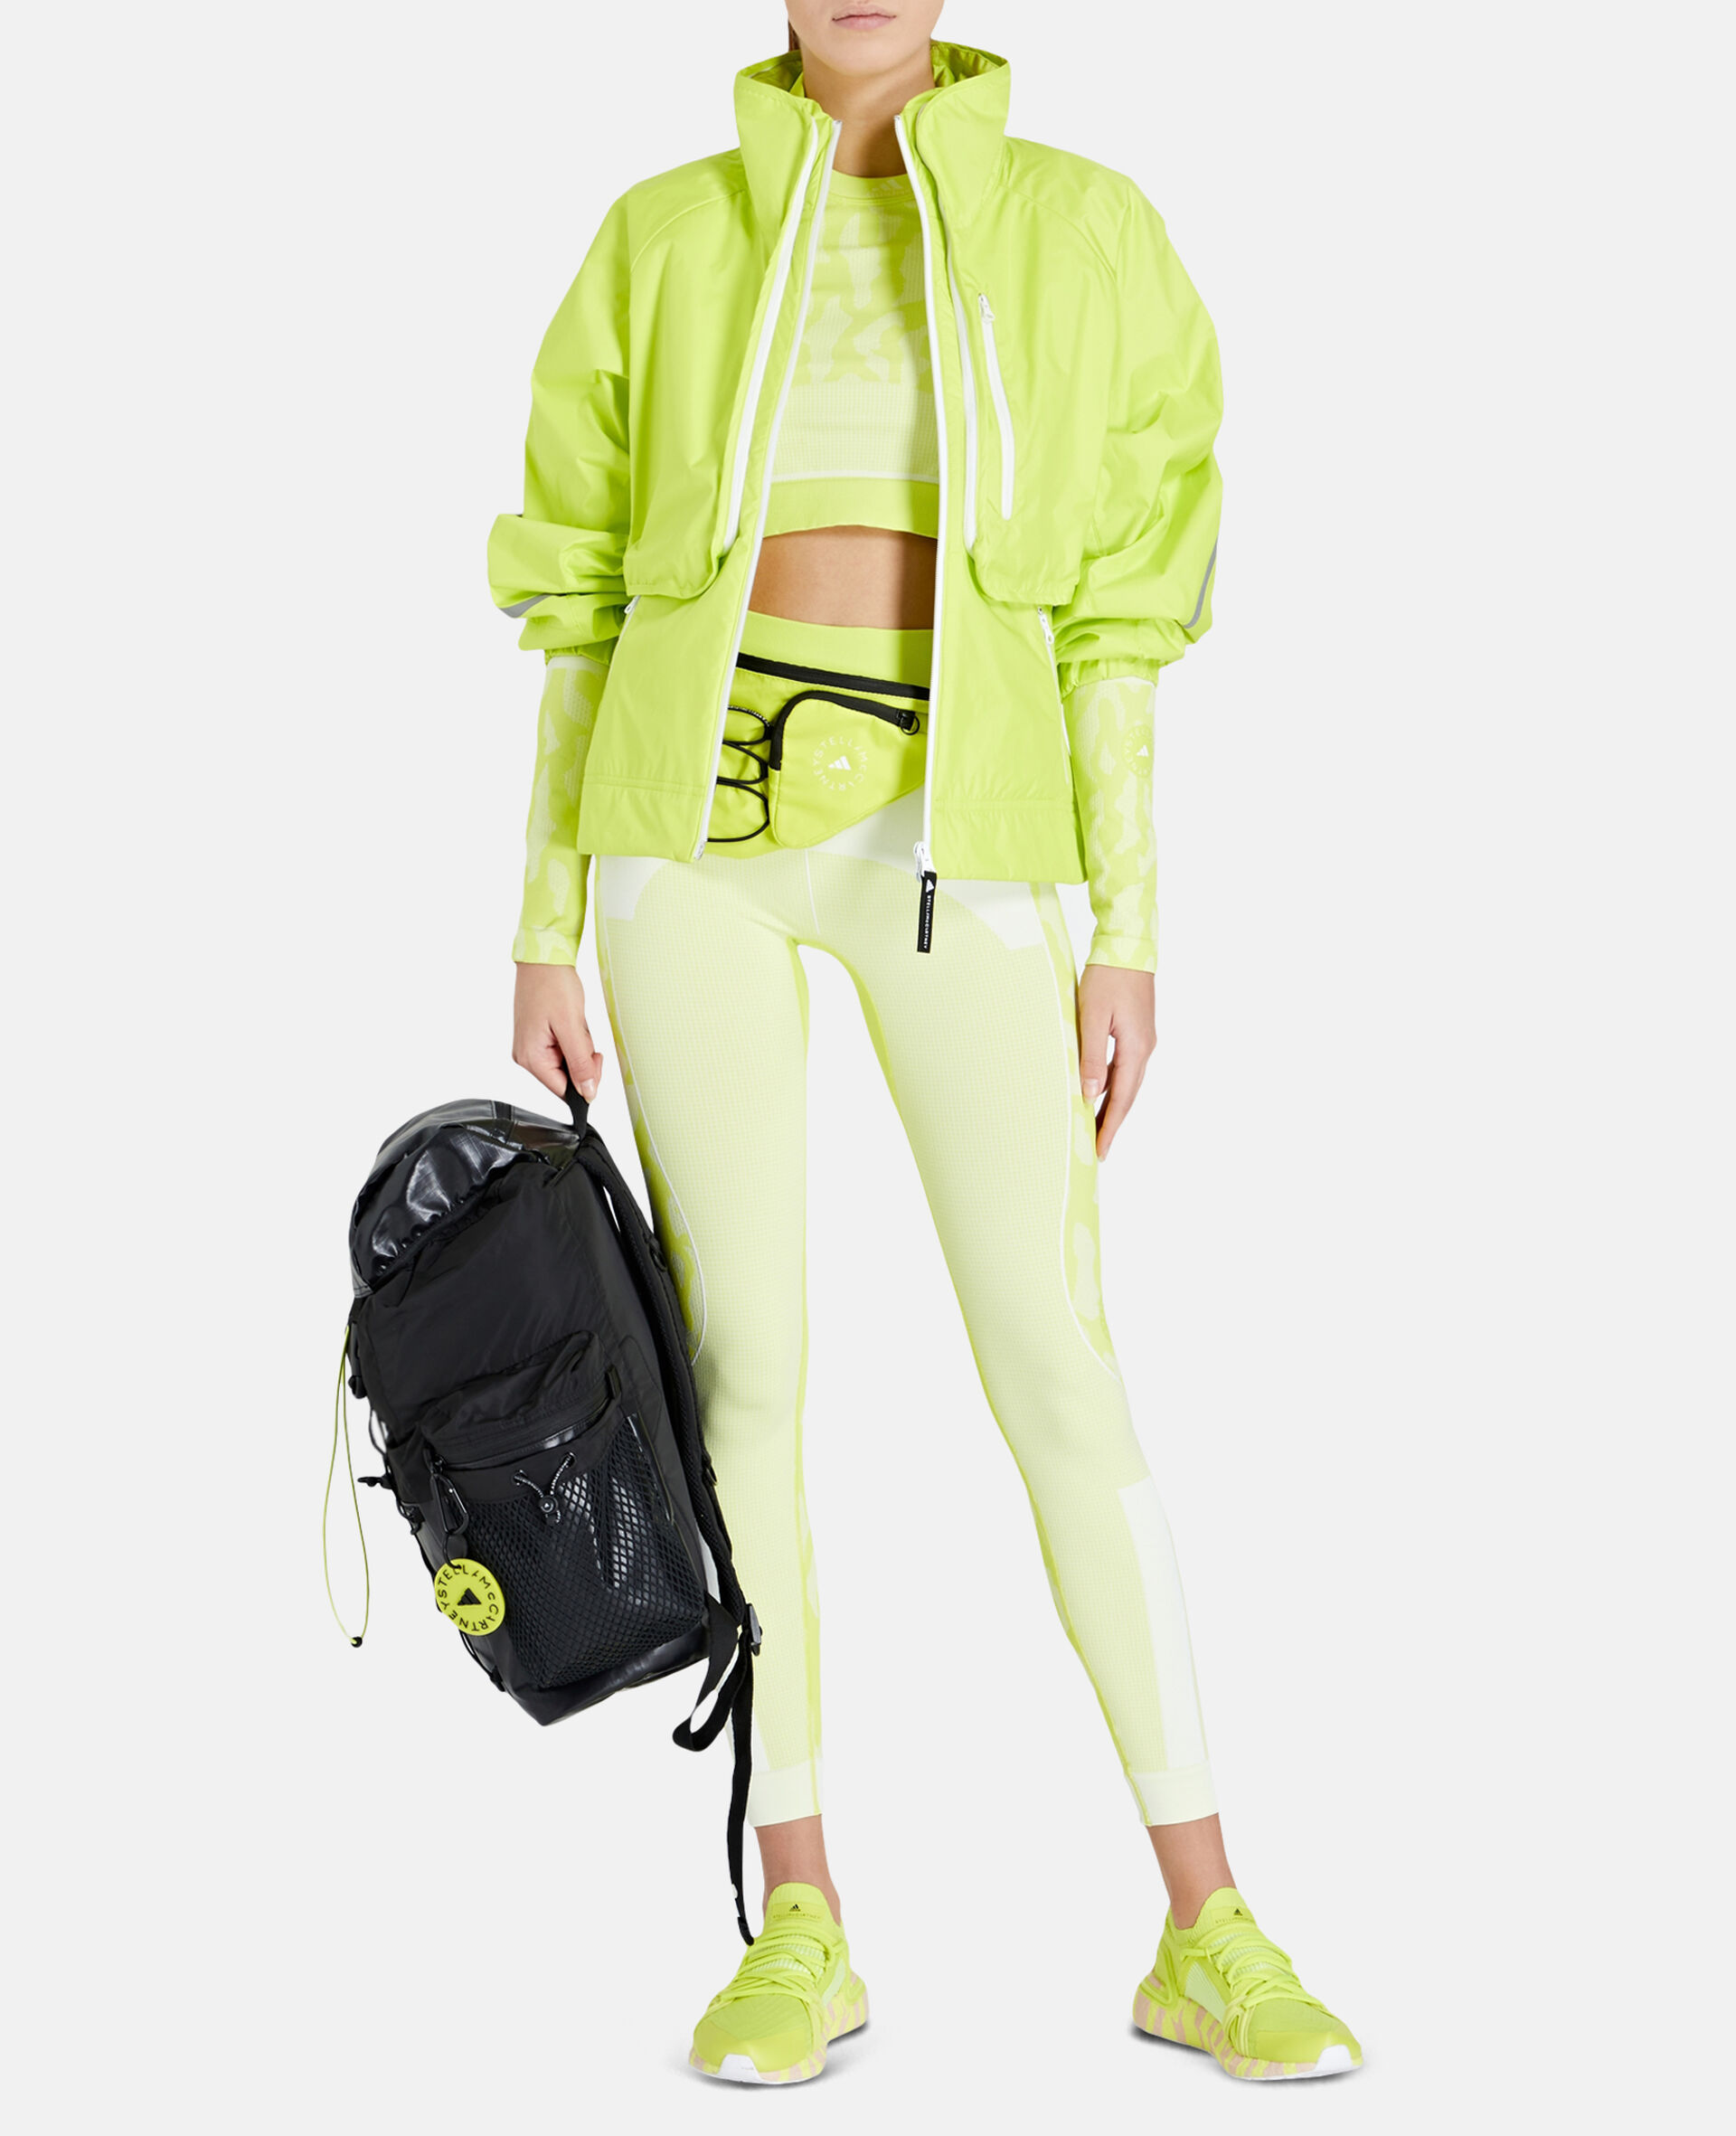 TruePace 2-in-1 Running Jacket-Yellow-large image number 1